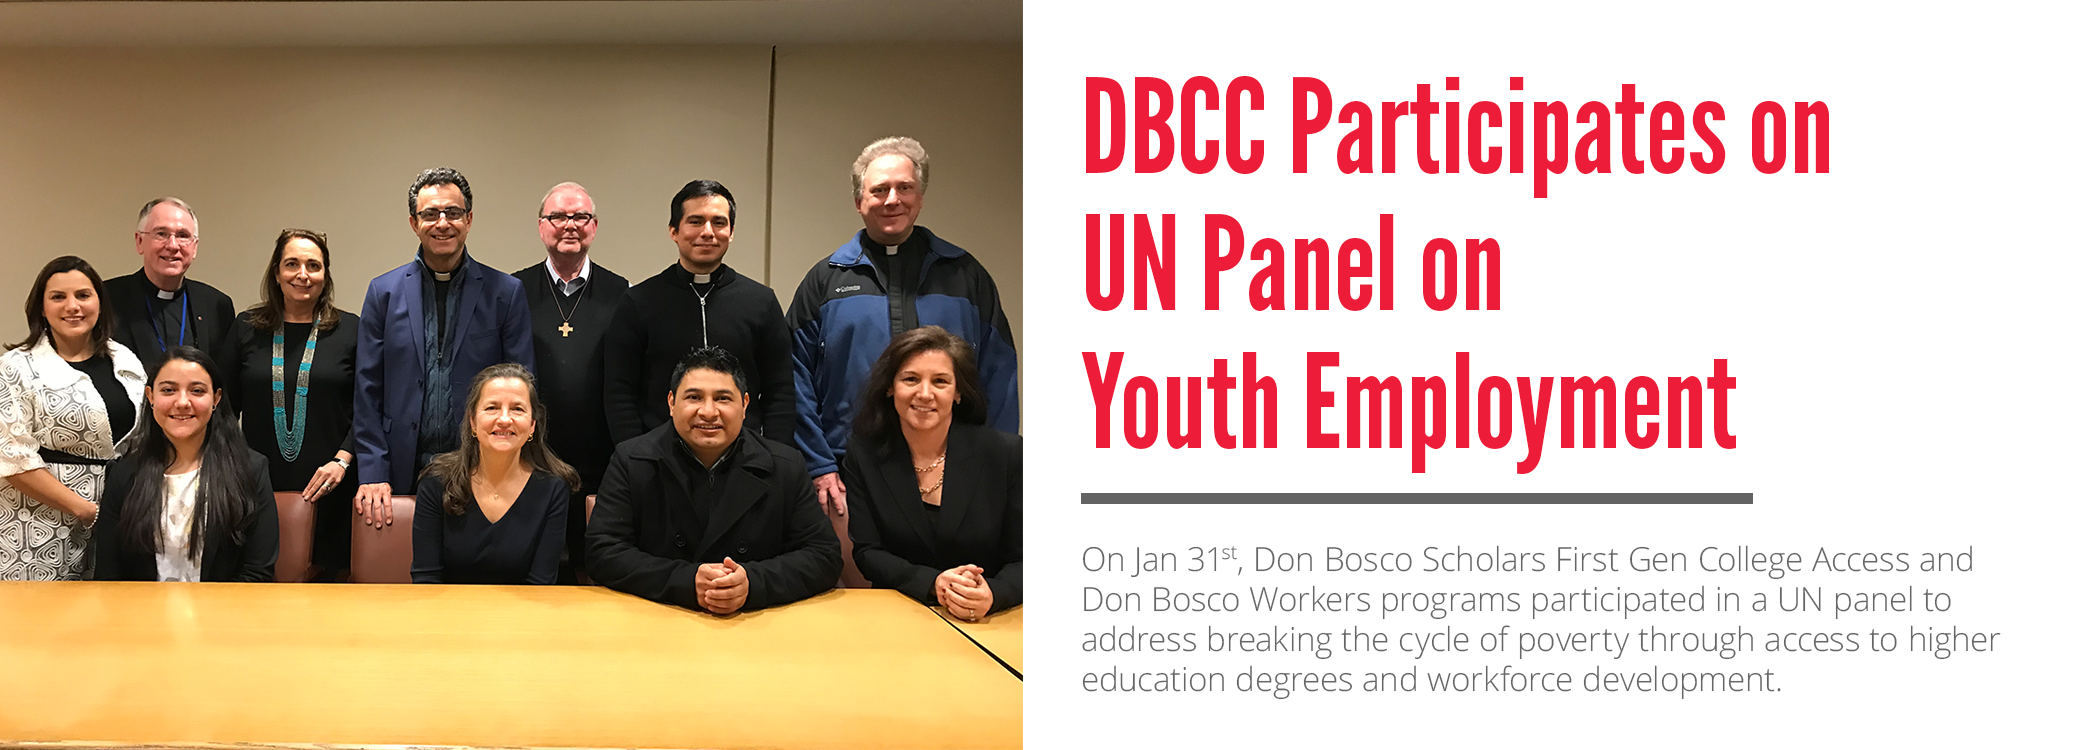 DBCC at the UN